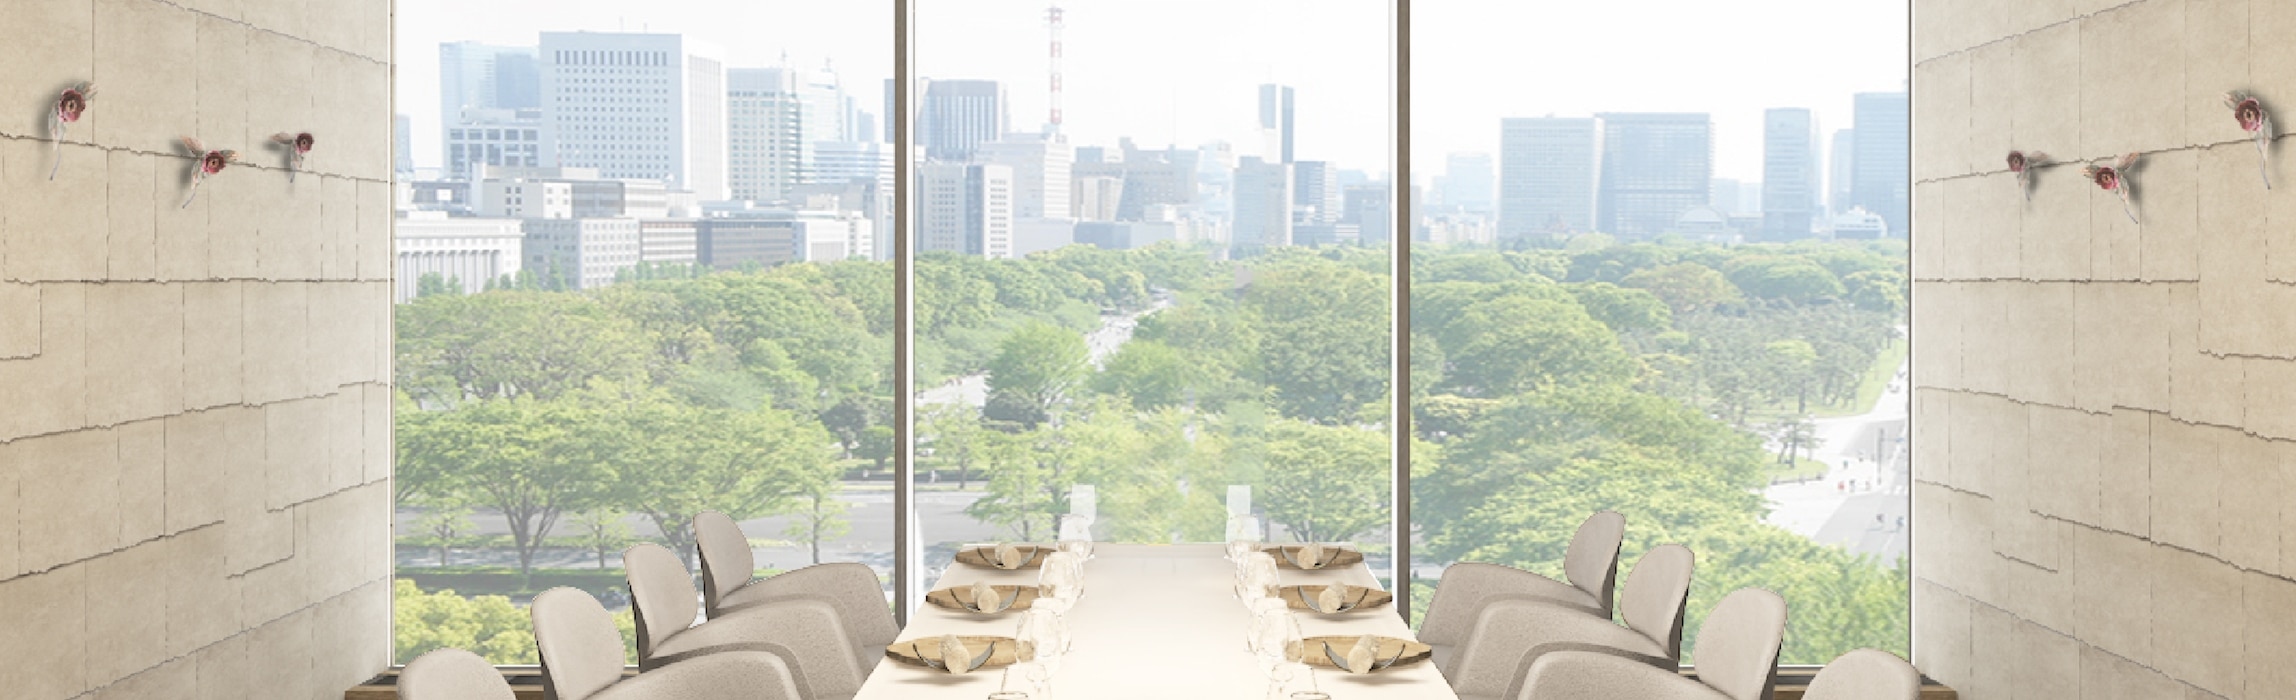 ESTERRE by Alain Ducasse at Palace Hotel Tokyo RENDERING II FS2